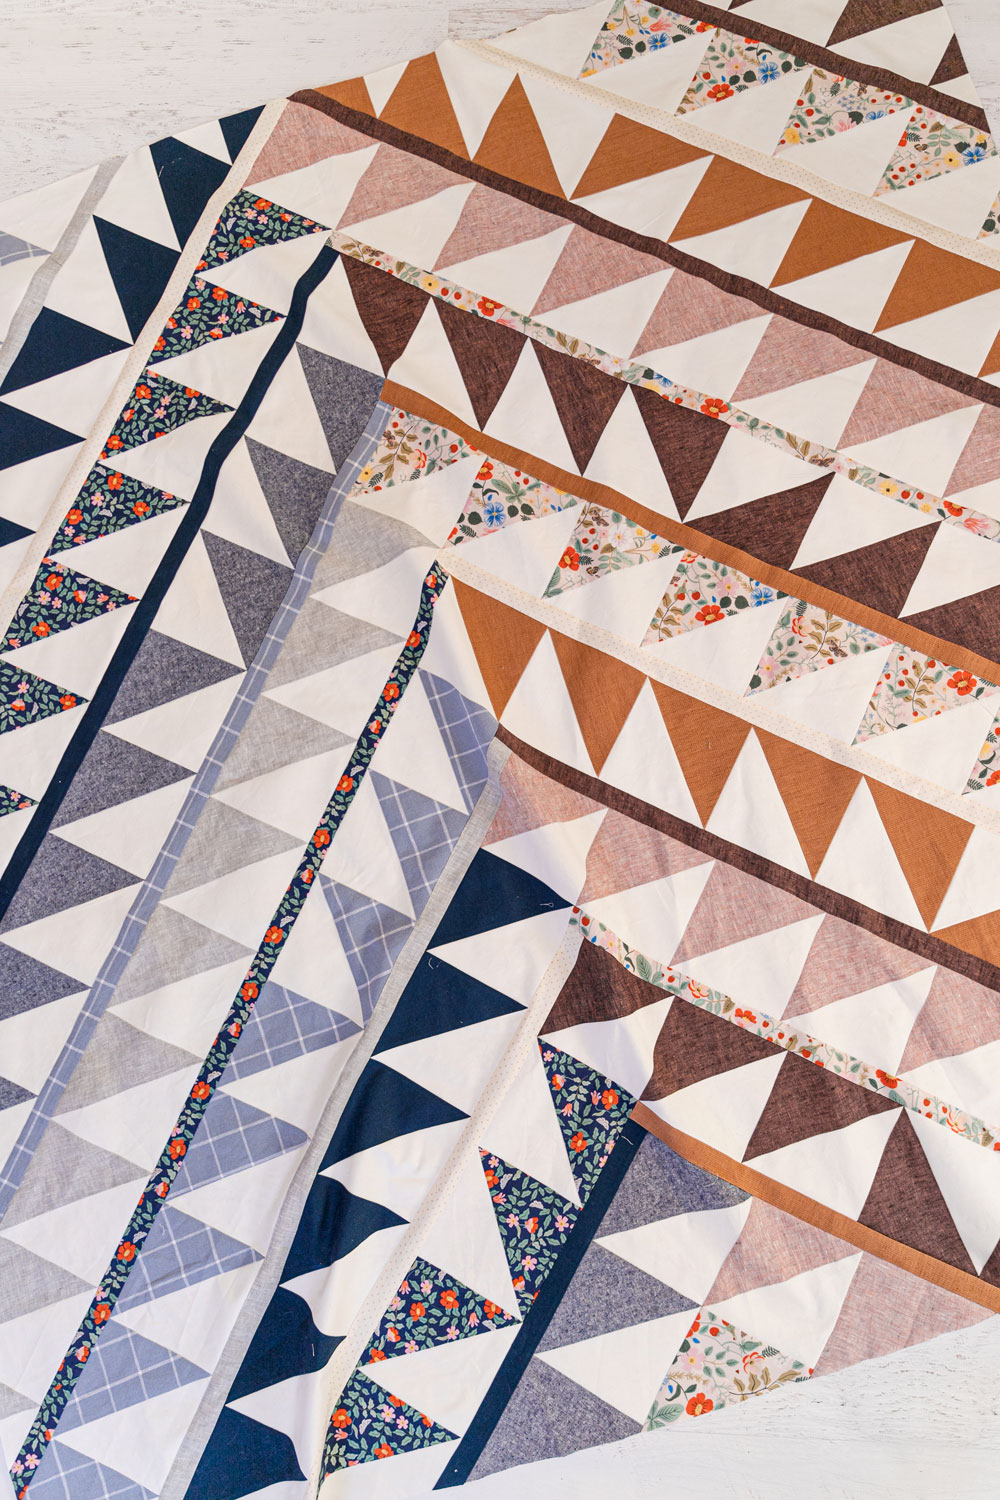 The Gather quilt sew along is an online quilting community experience! We will make this modern quilt pattern together – one week at a time. suzyquilts.com #quiltalong #modernquilting